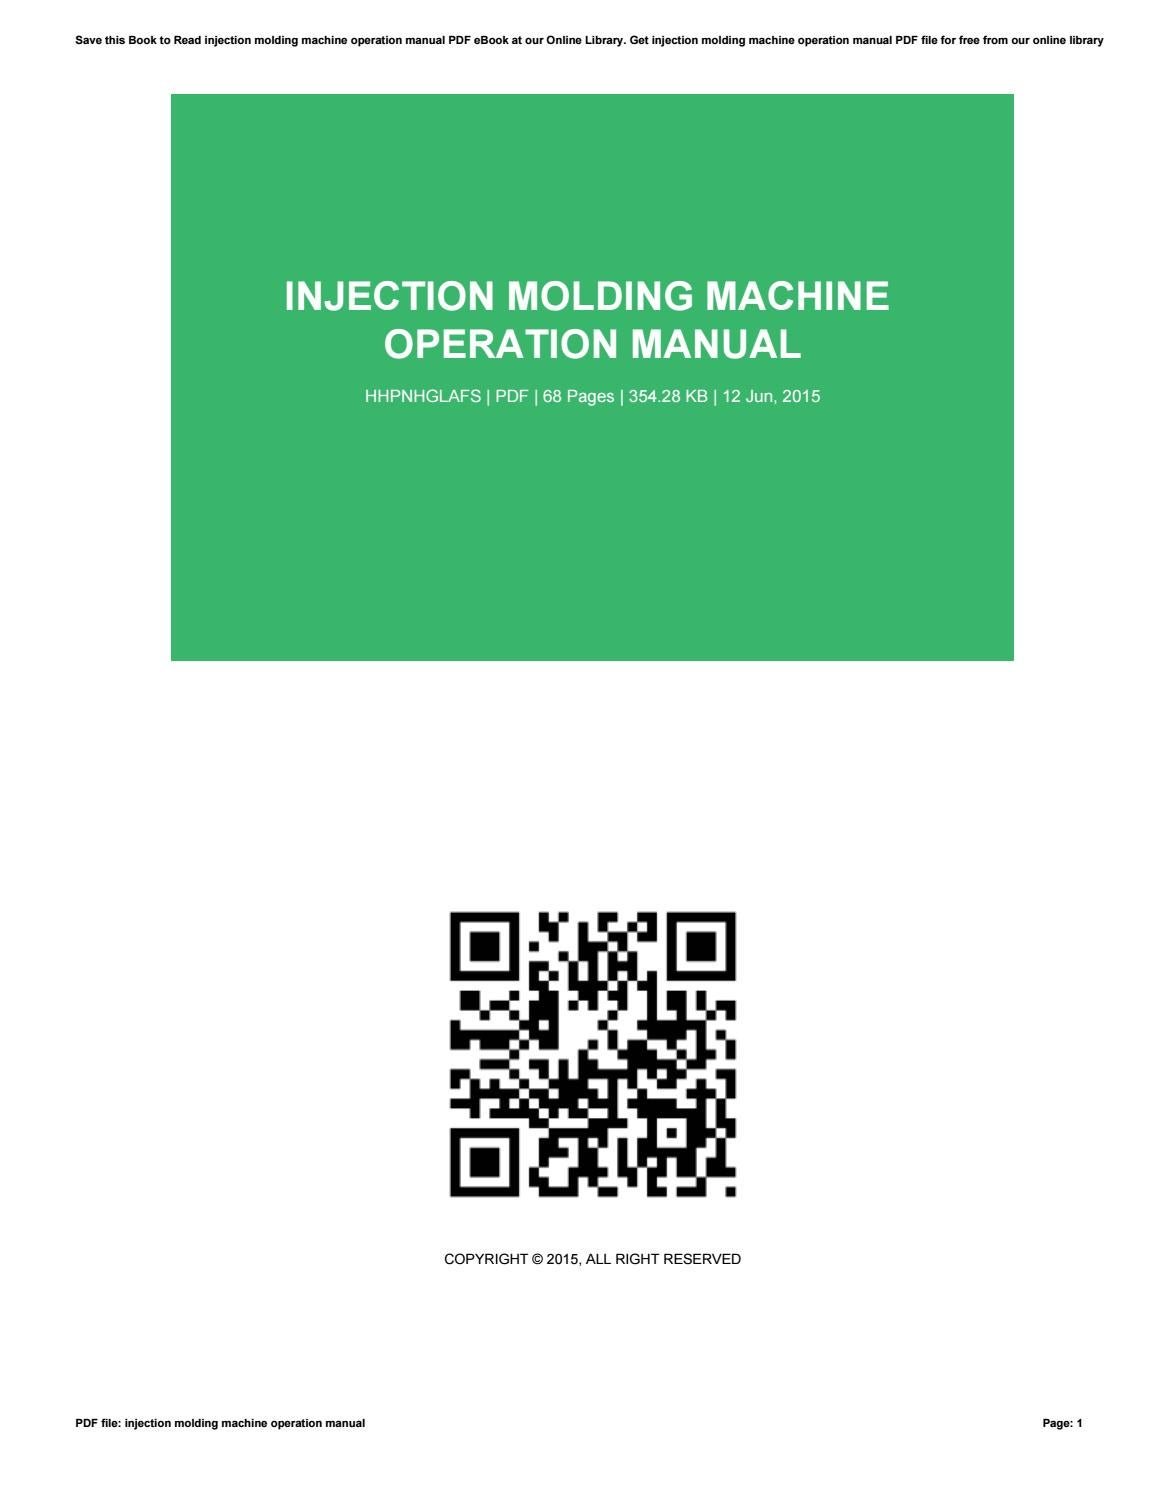 Injection molding machine operation manual by JaneRabon1296